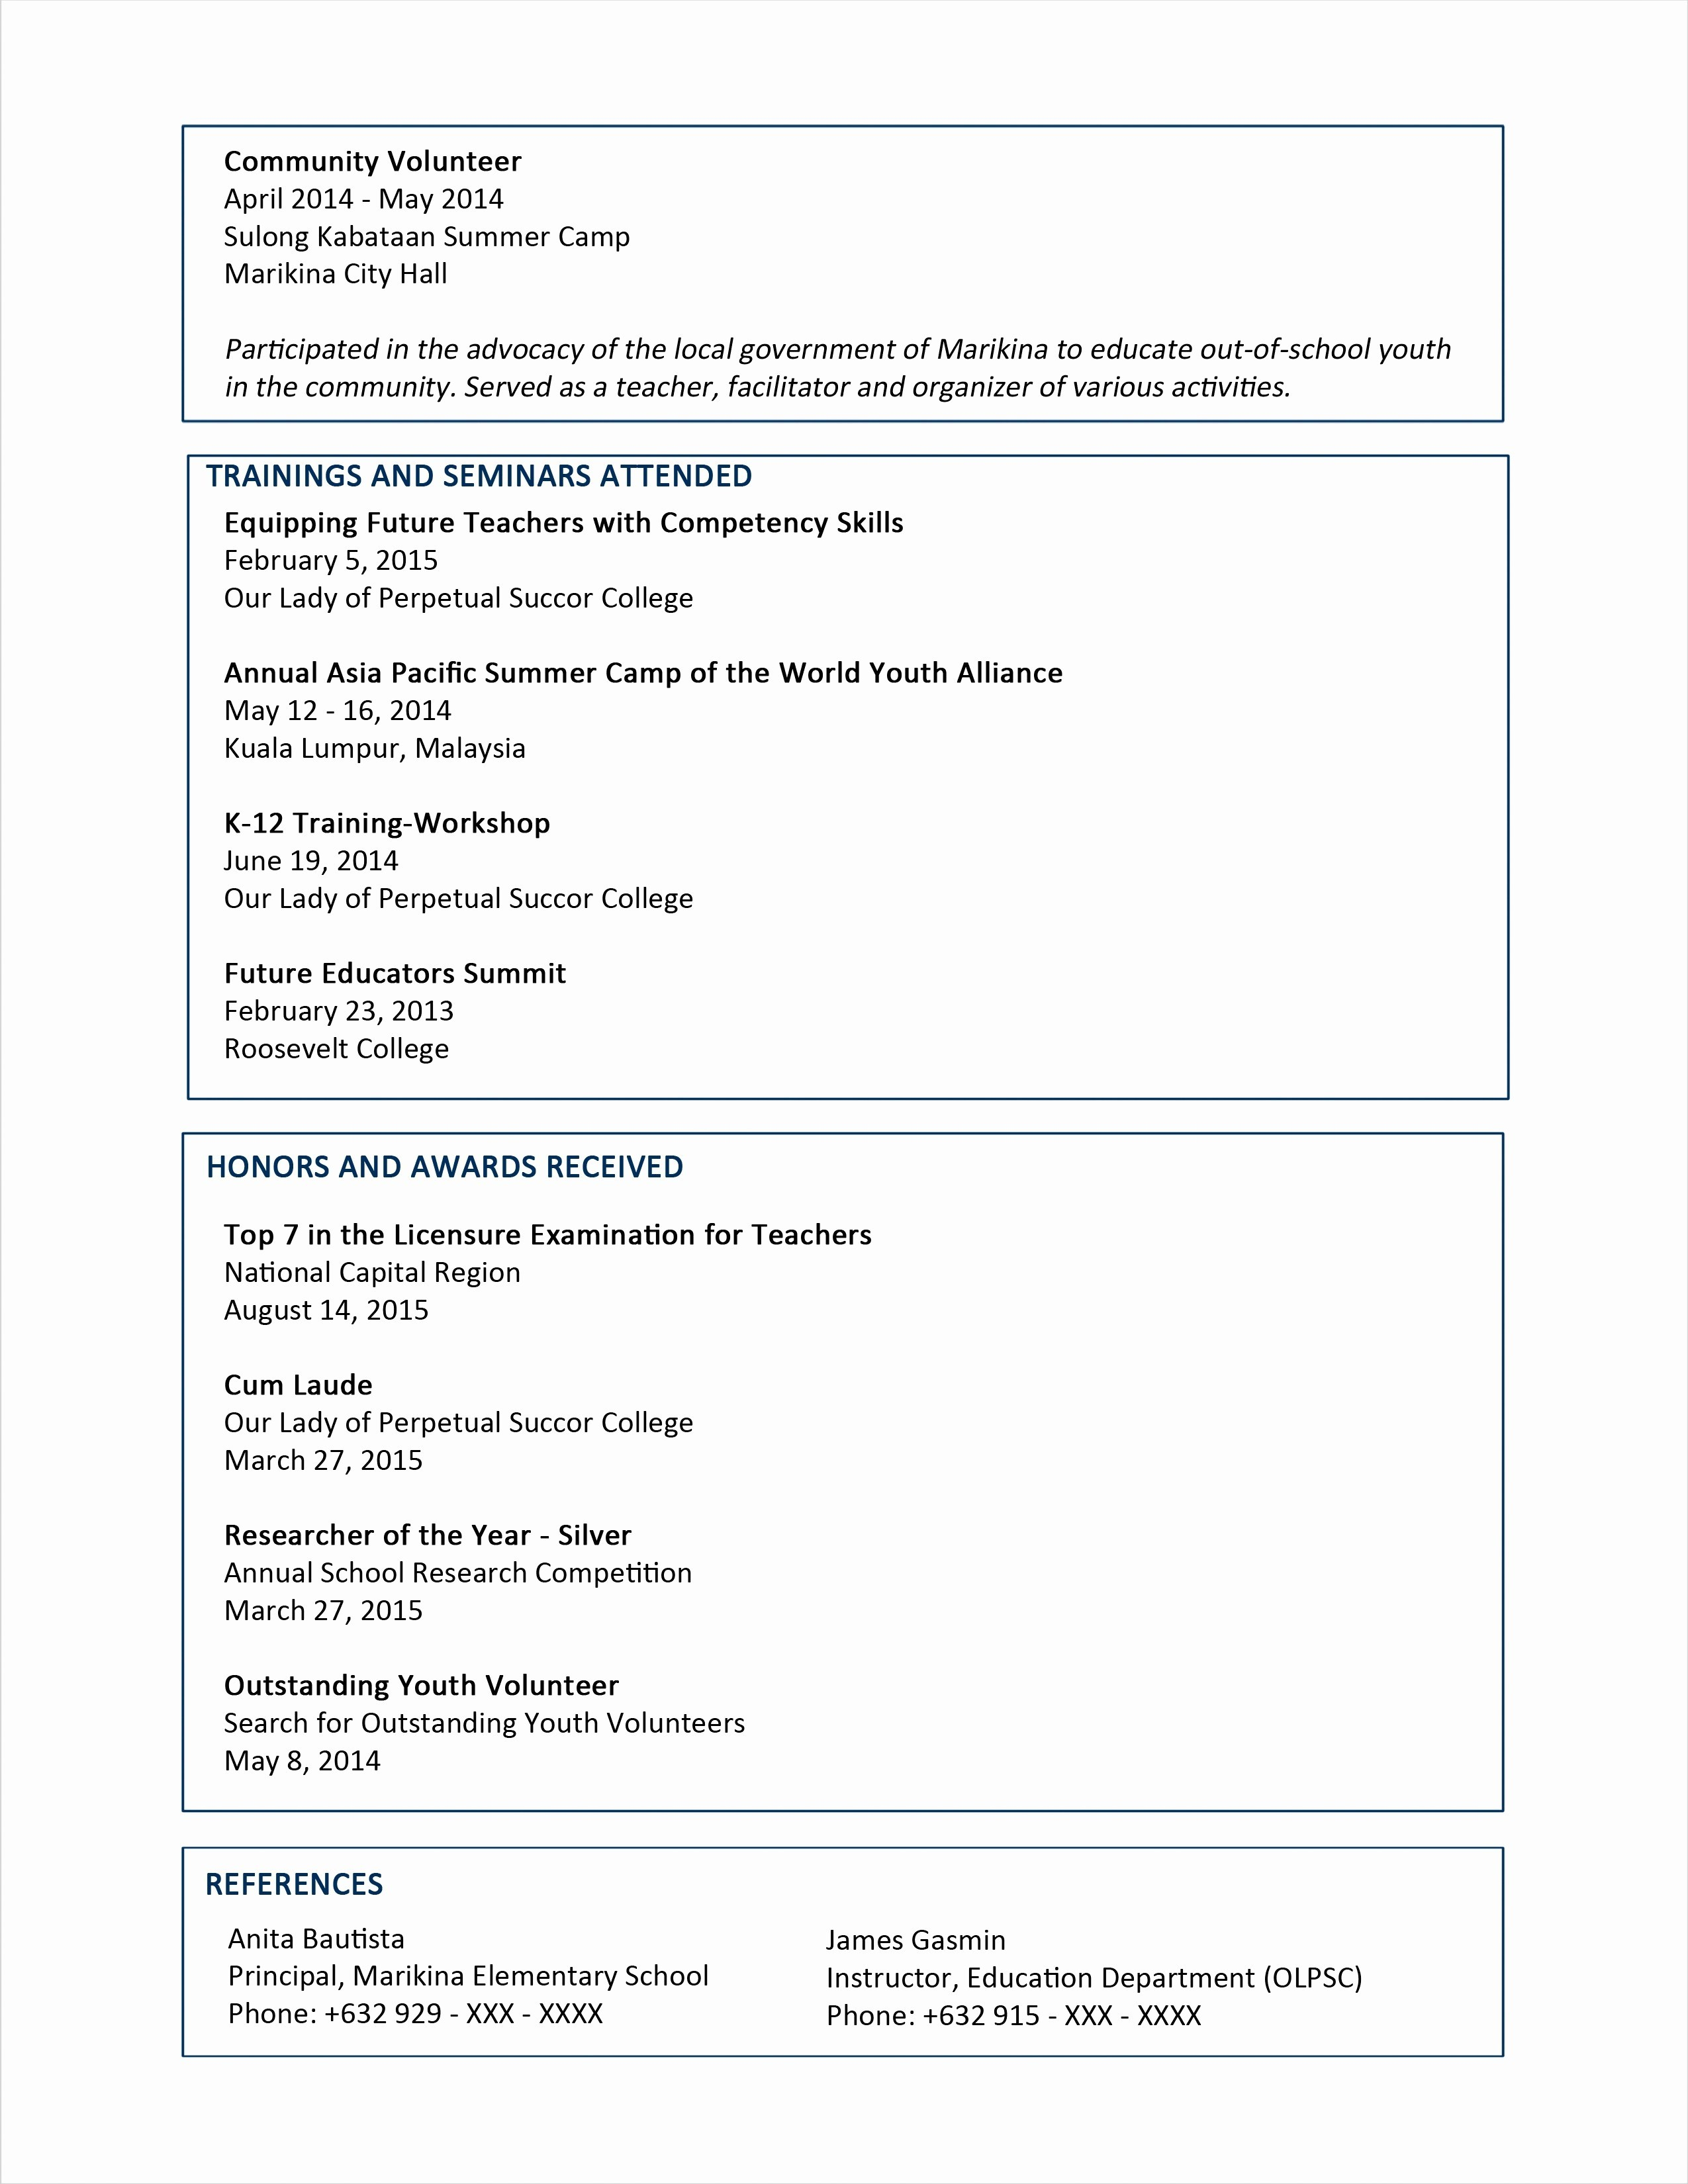 Resume Opening Statement - Resume In Spanish Unique Best Examples Resumes Ecologist Resume 0d